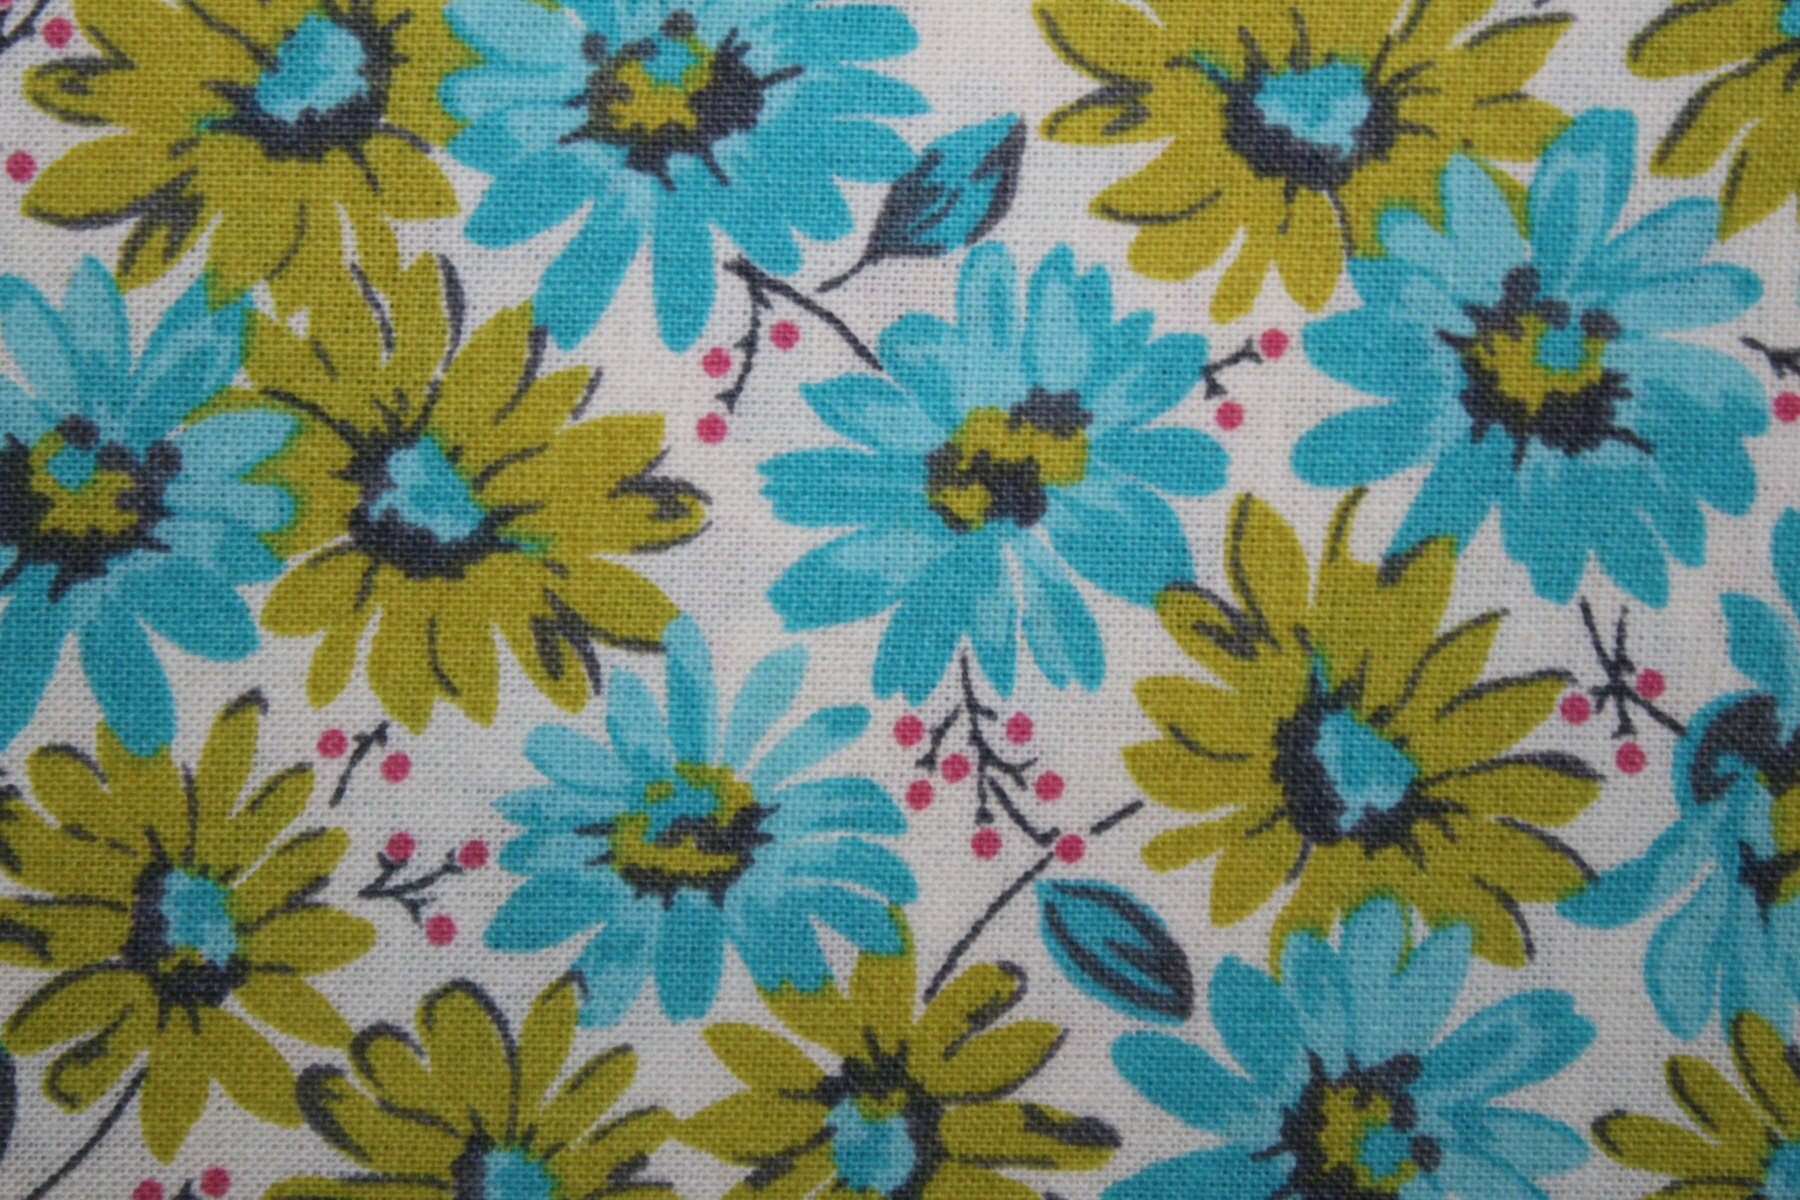 Fabric floral fabric flowers daisies by the yard cotton fabric 250 izmirmasajfo